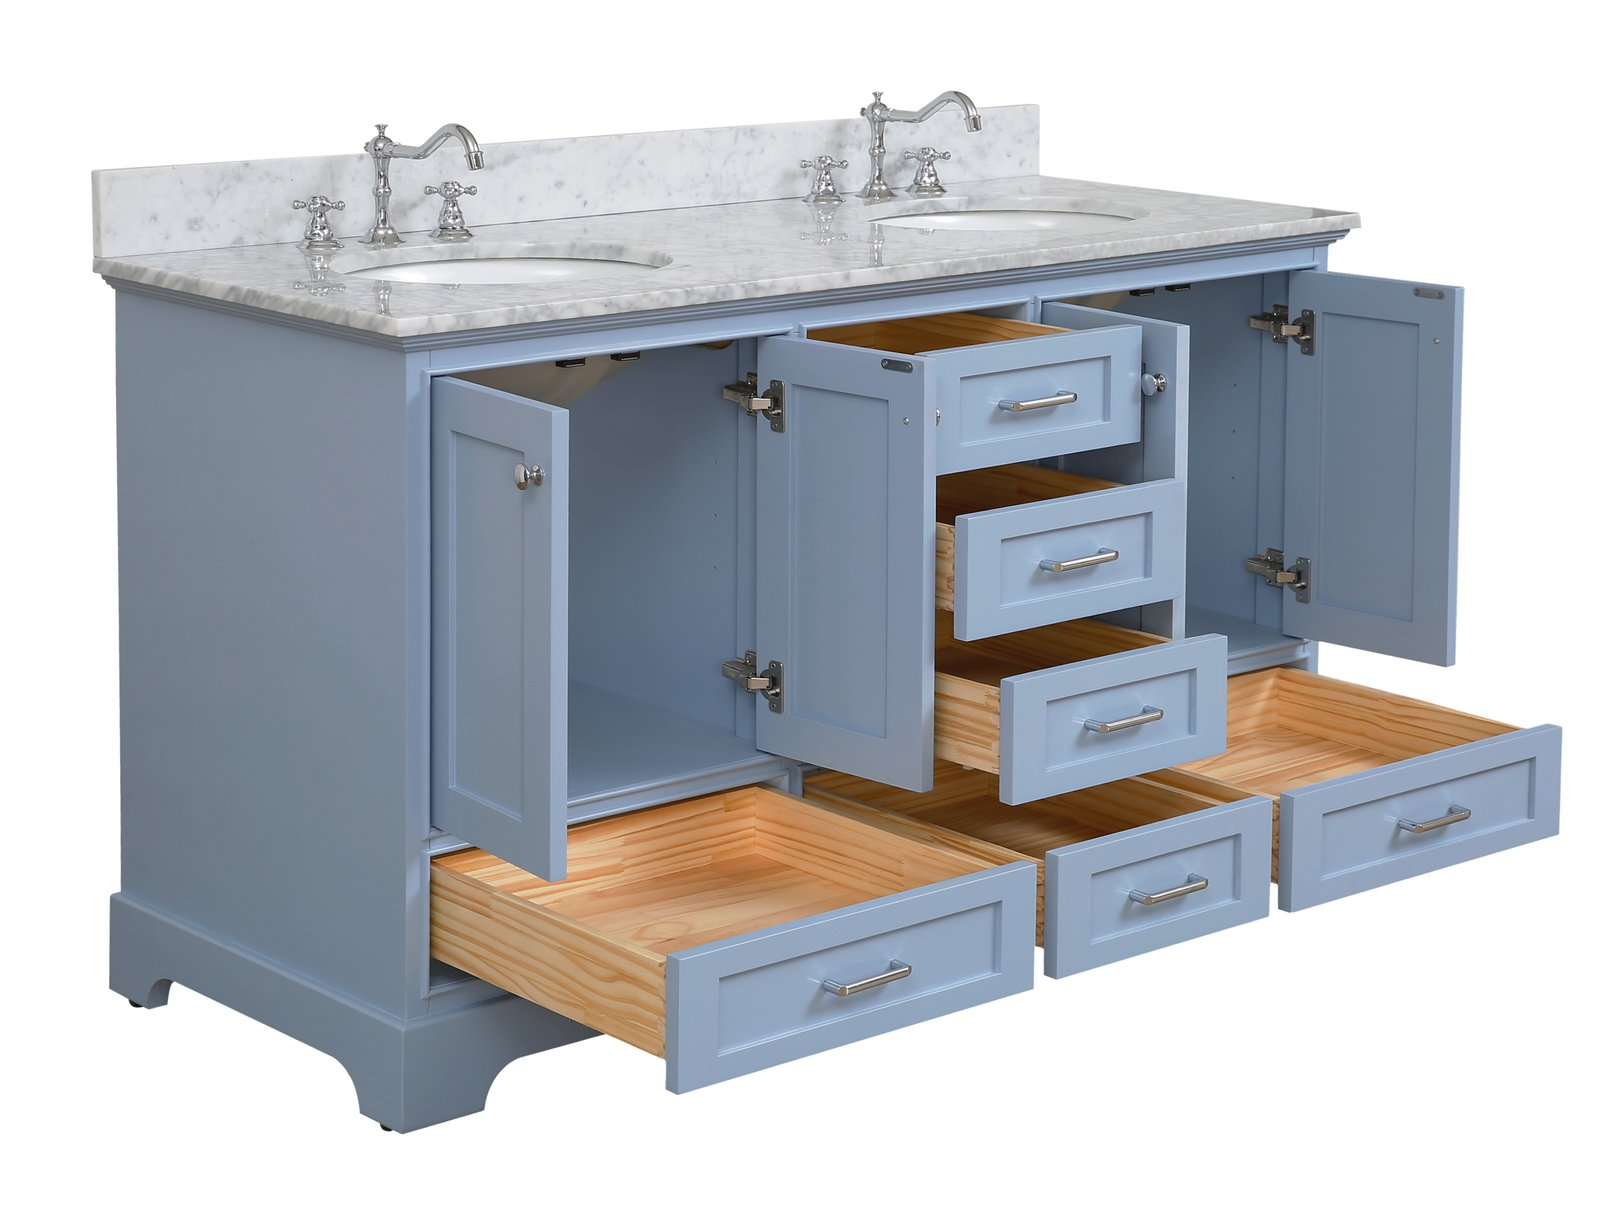 And White Ceramic Sink Carrara Royal Blue Royal Blue Cabinet With Soft Close Function Harper 60 Inch Double Bathroom Vanity Includes Authentic Italian Carrara Marble Countertop Talkingbread Co Il